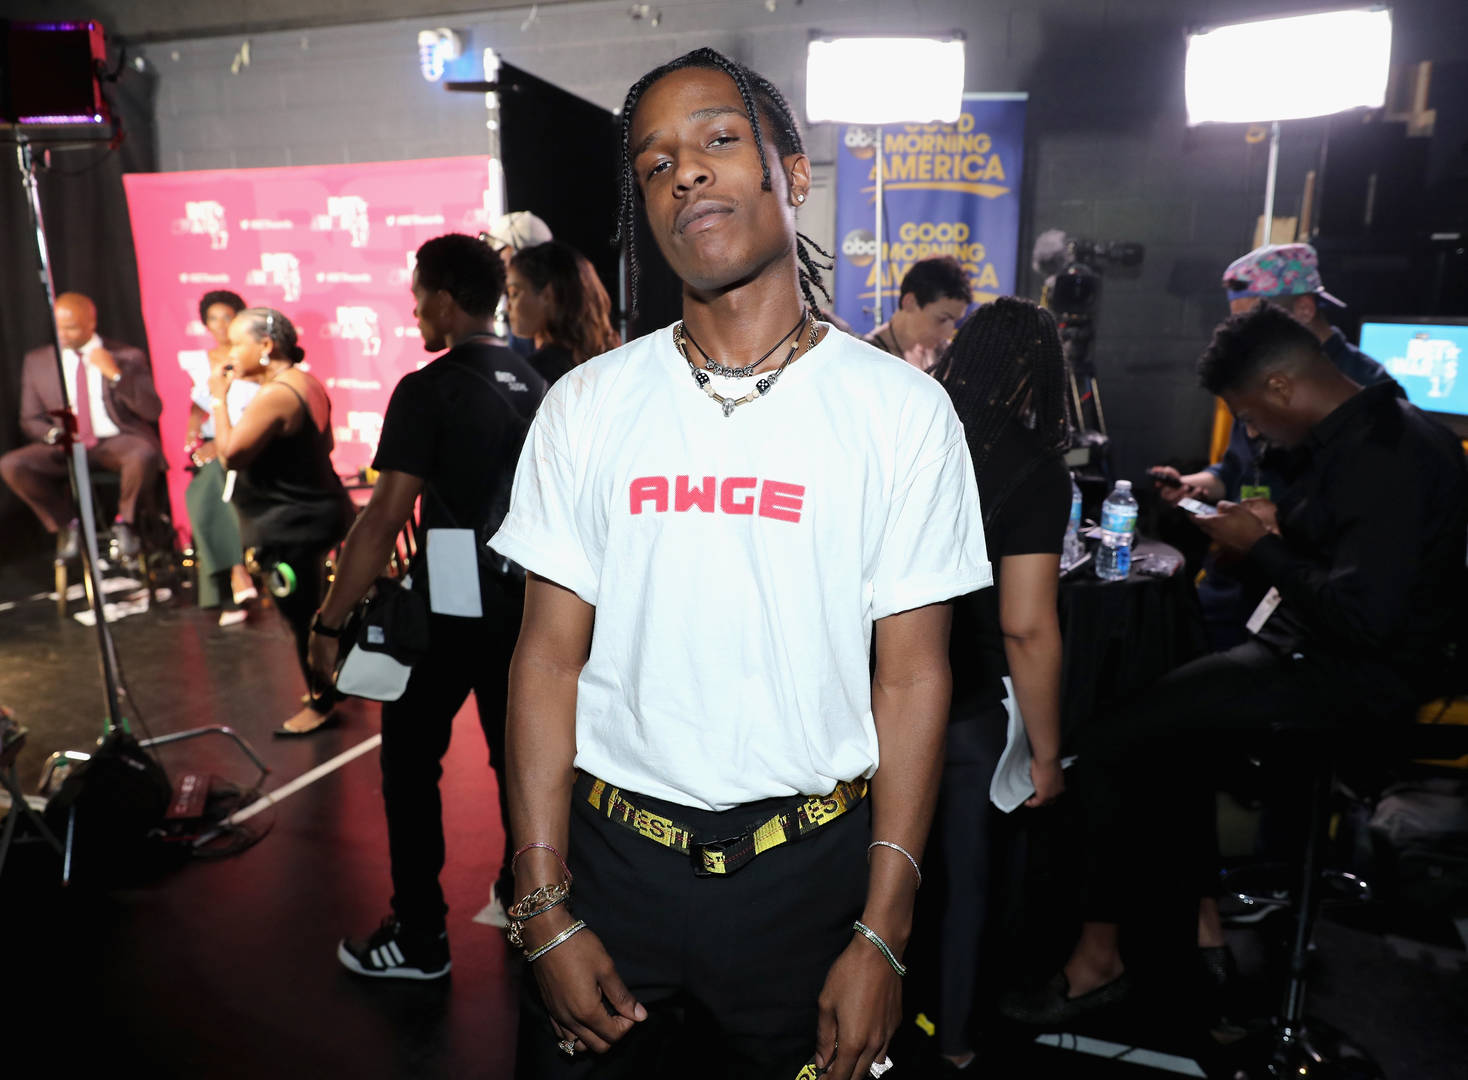 Manager says A$AP Rocky is being held at 'inhumane' Swedish prison